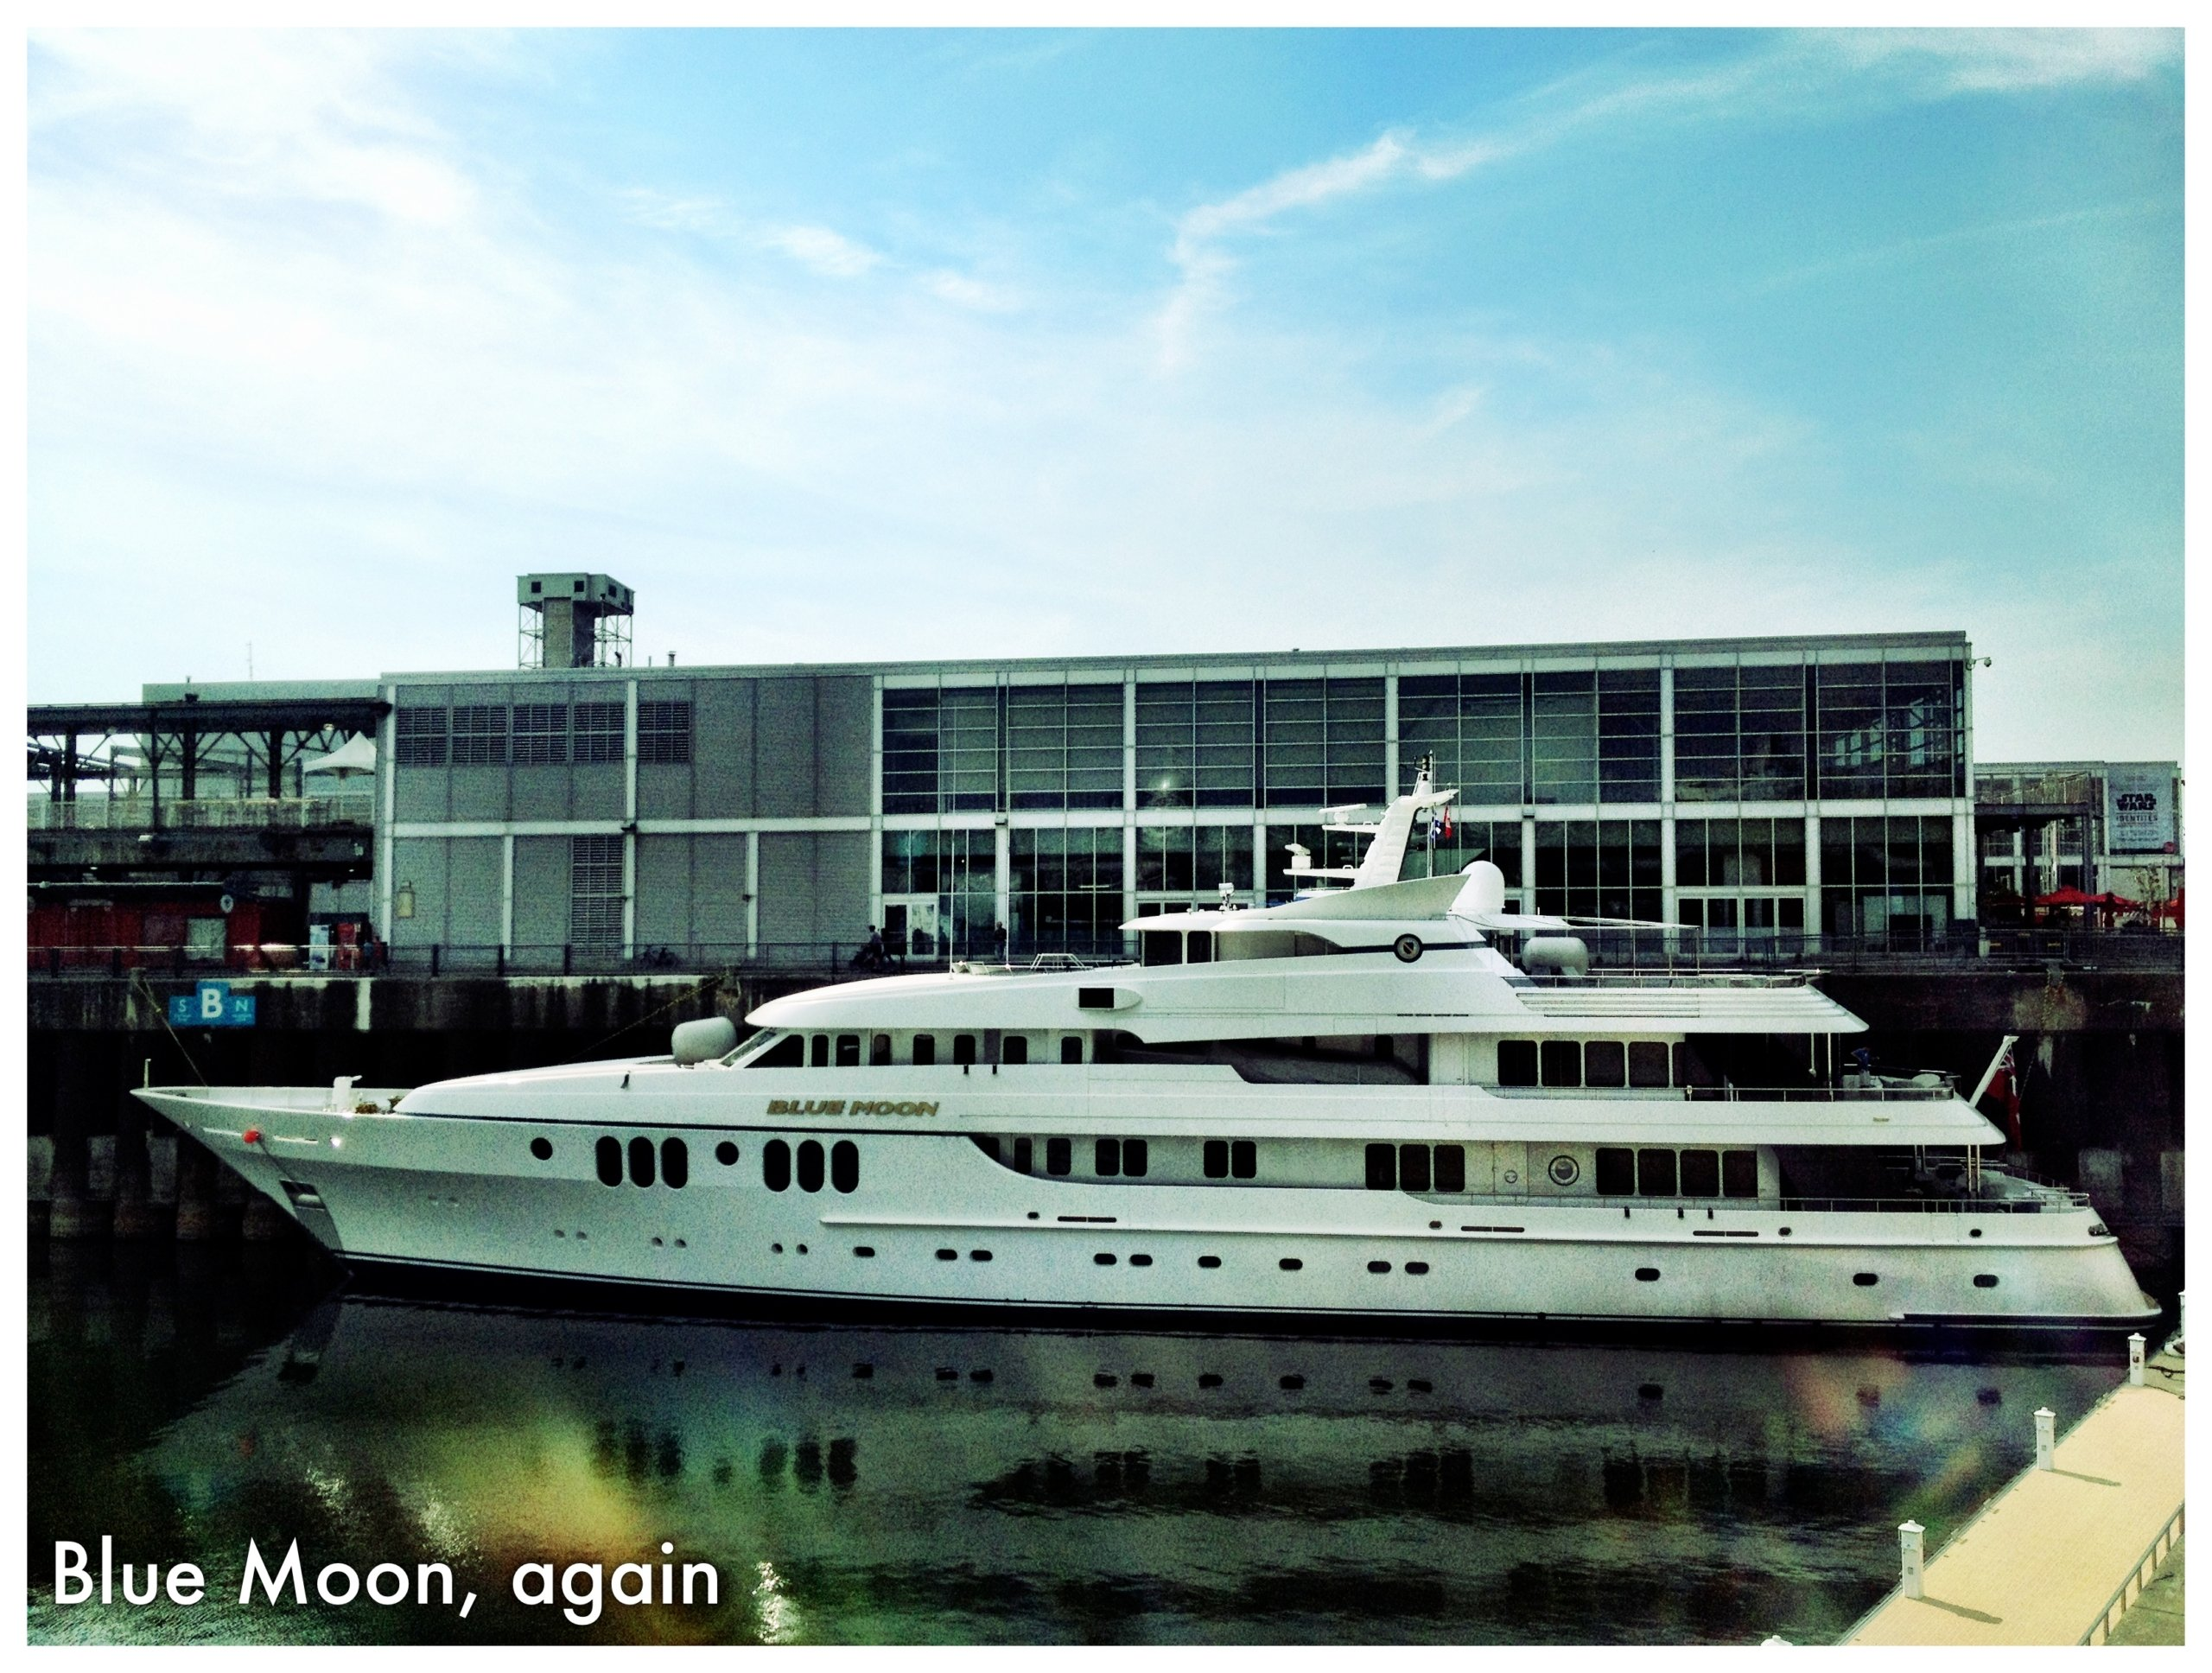 Blue Moon Yacht